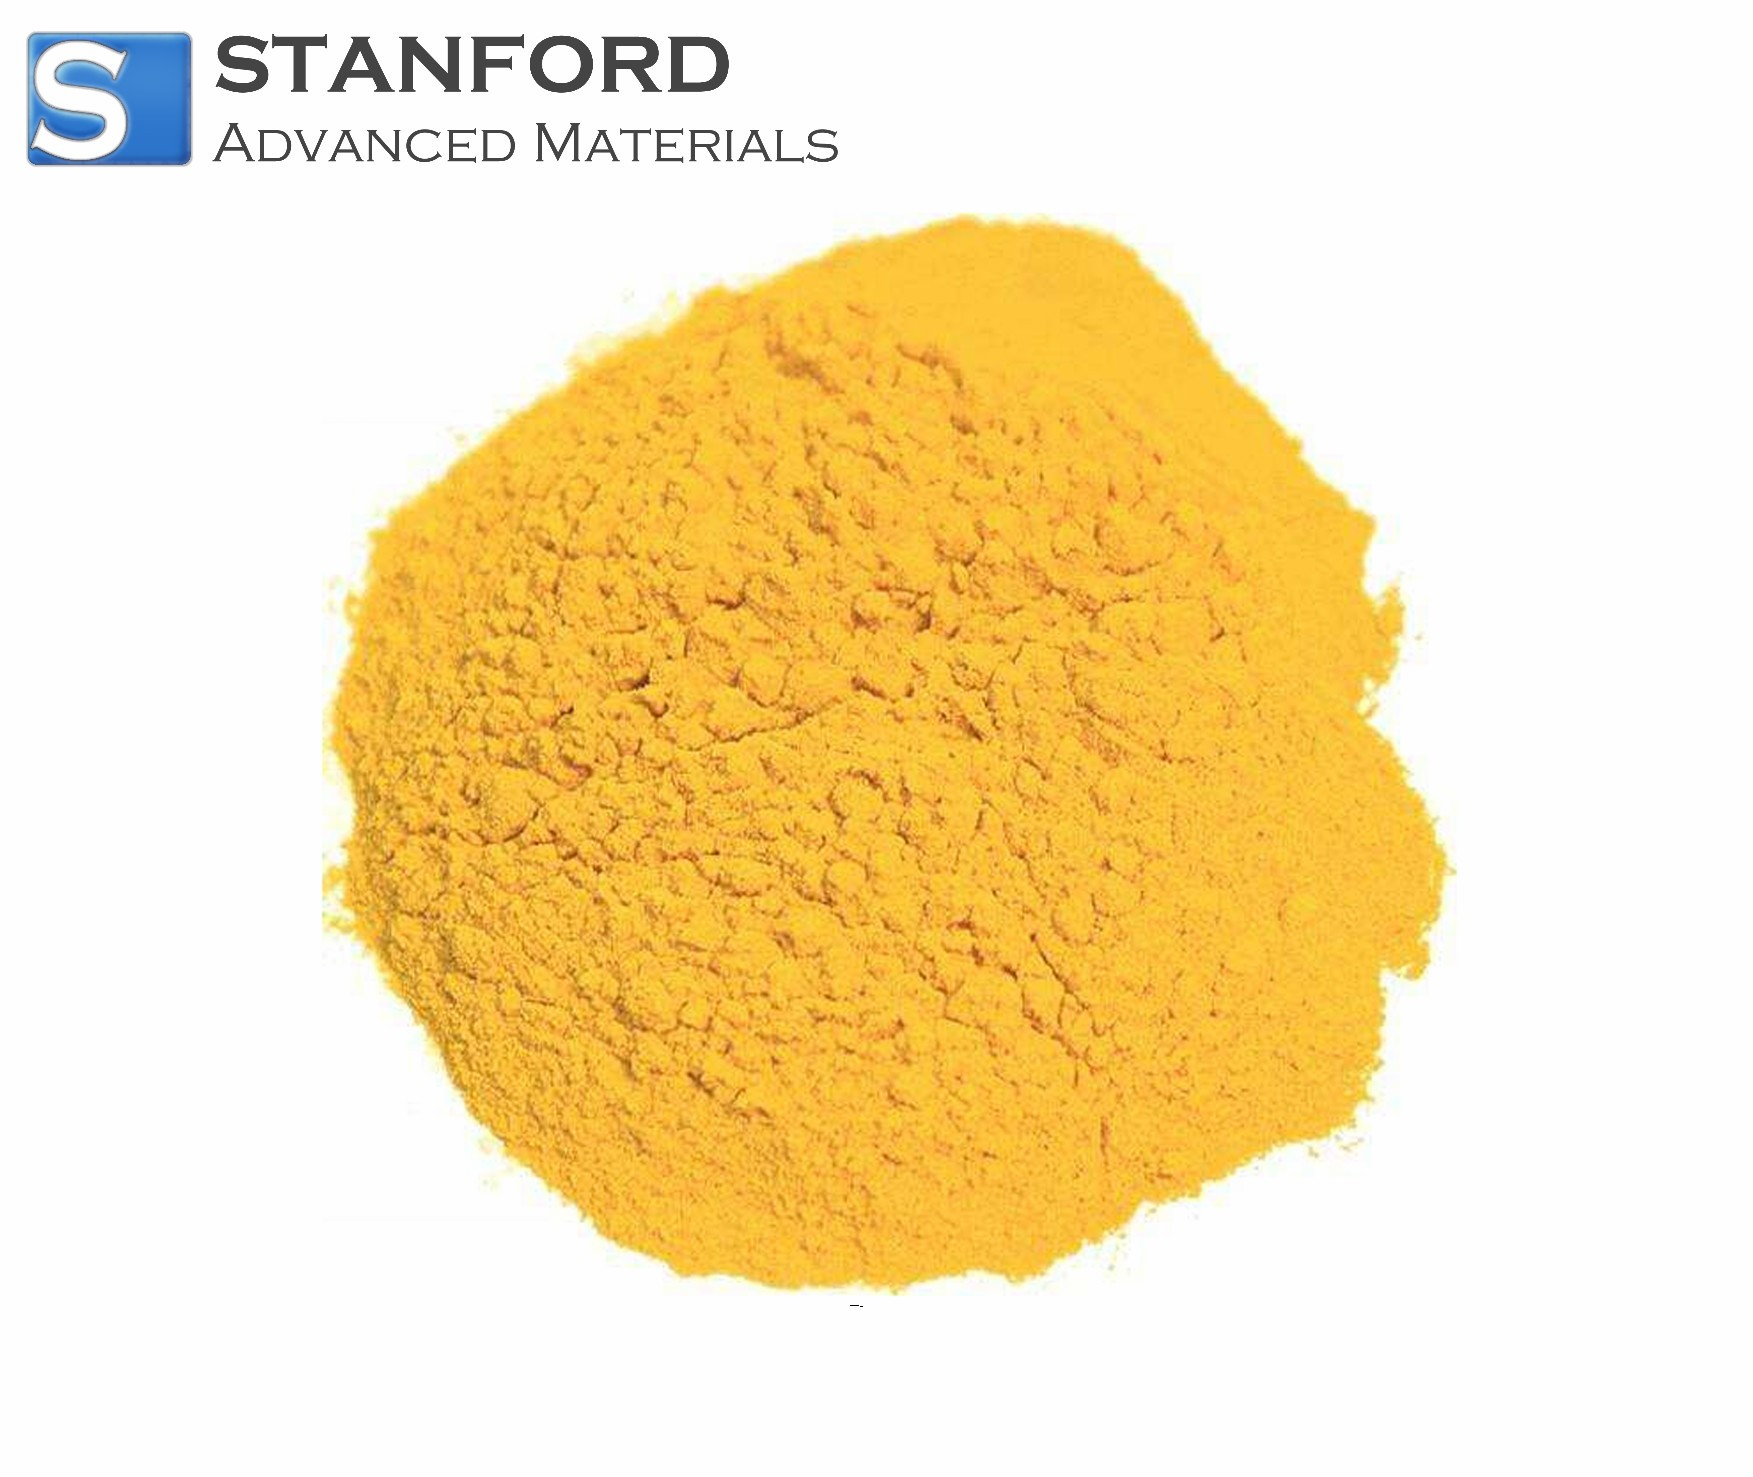 PT2111 Potassium Hexachloroplatinate(IV) Powder (CAS No.16921-30-5)